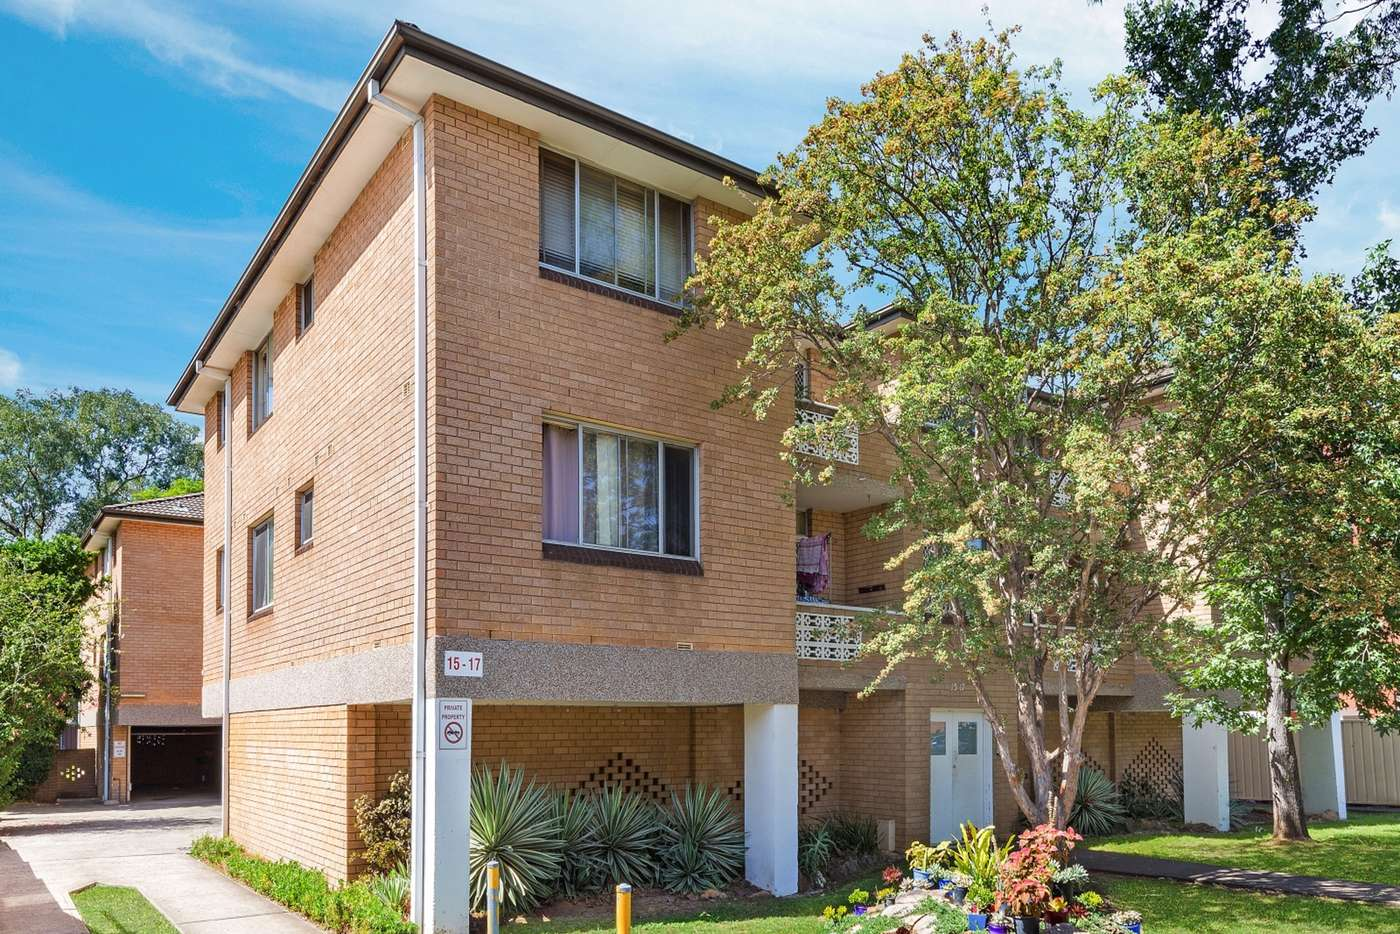 Main view of Homely apartment listing, 7/15-17 The Trongate, Granville NSW 2142